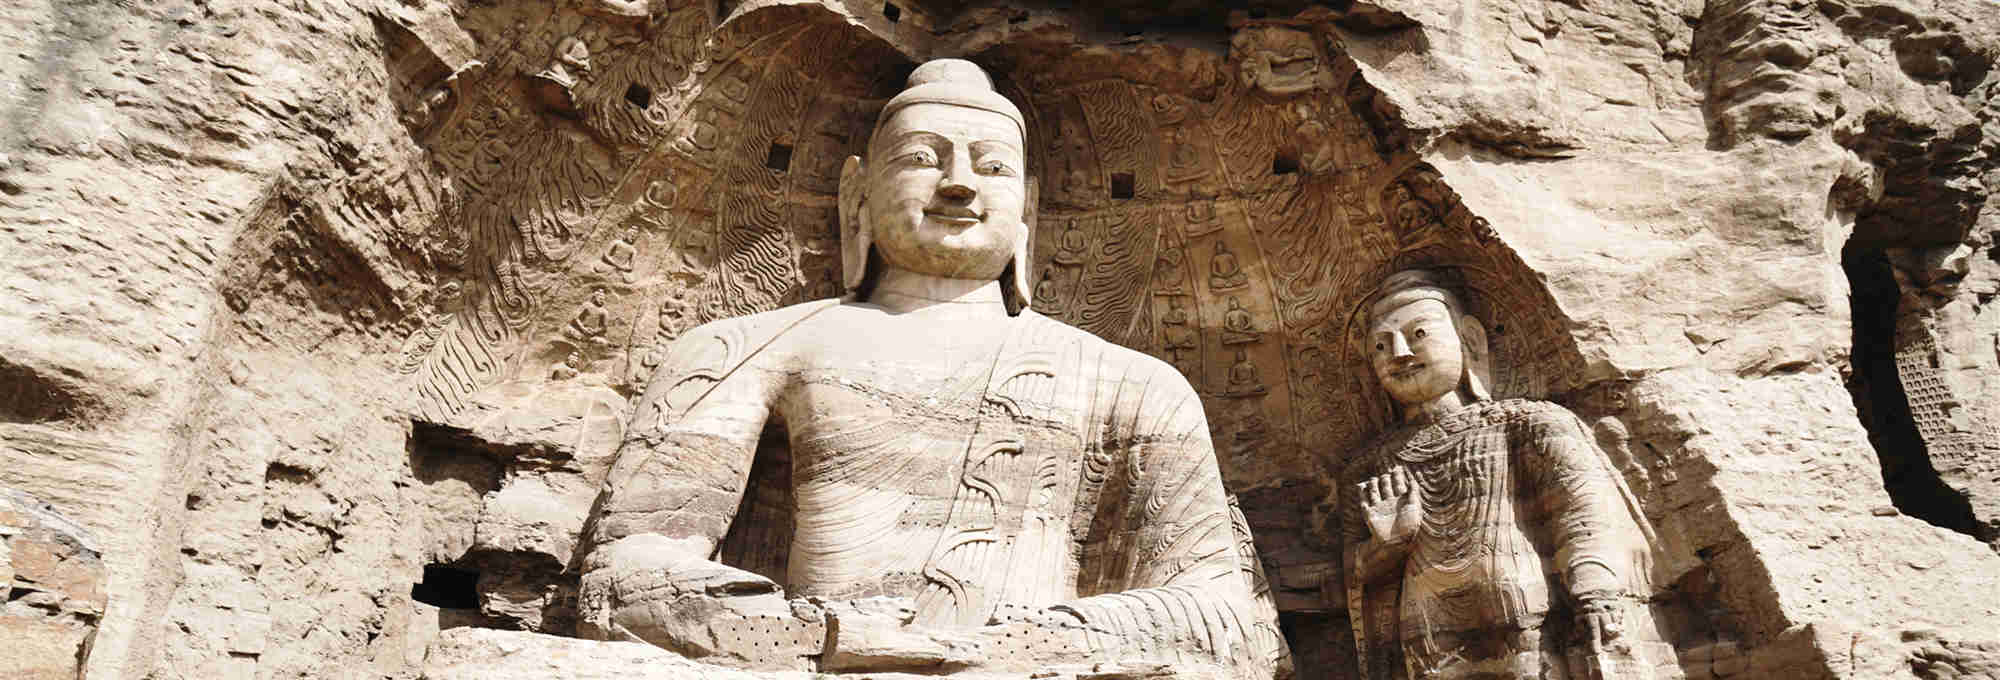 One-day Datong Yungang Grottoes and Hanging Monastery Private Tour